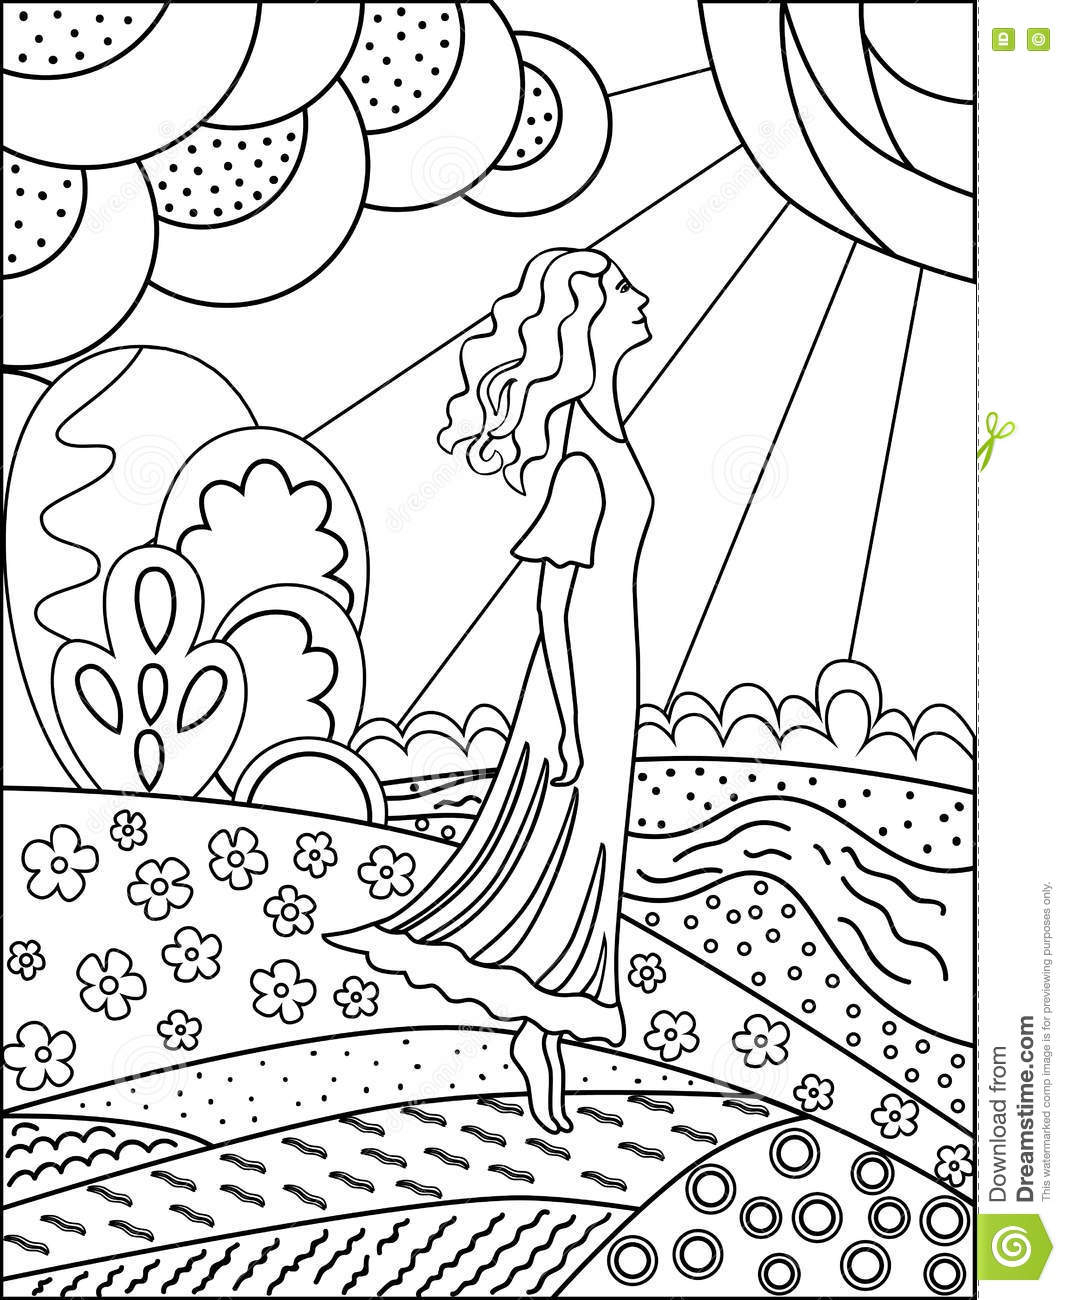 1066x1300 Simple Nature Drawings In Out Line Best Daisy Drawing Ideas